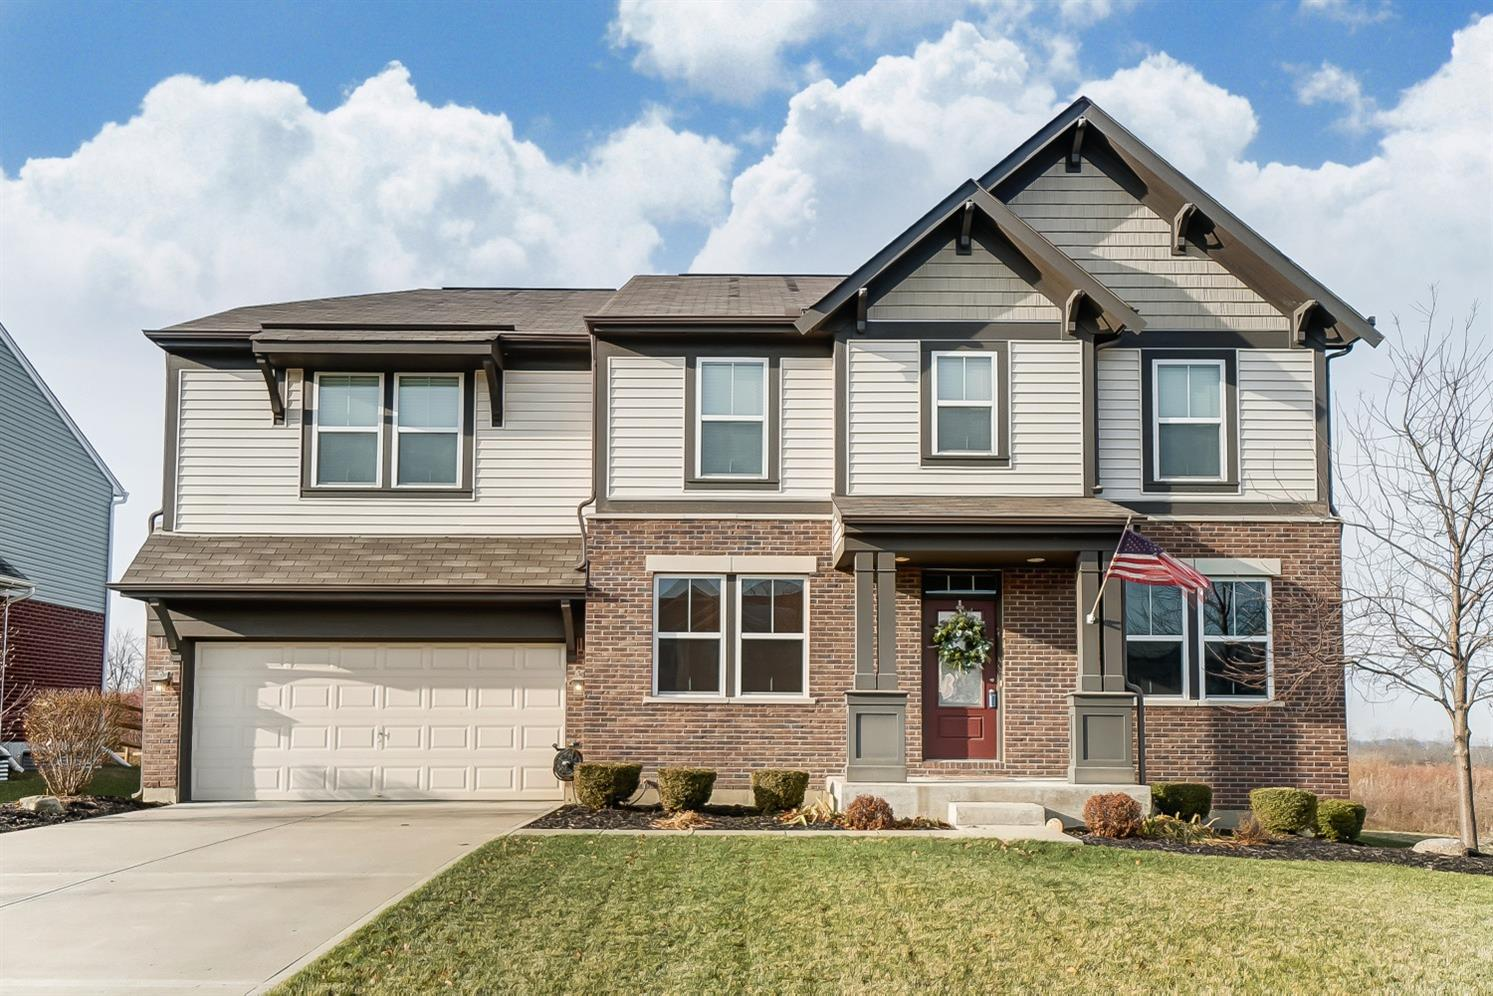 Property for sale at 3187 Renaissance Boulevard, Middletown,  Ohio 45005